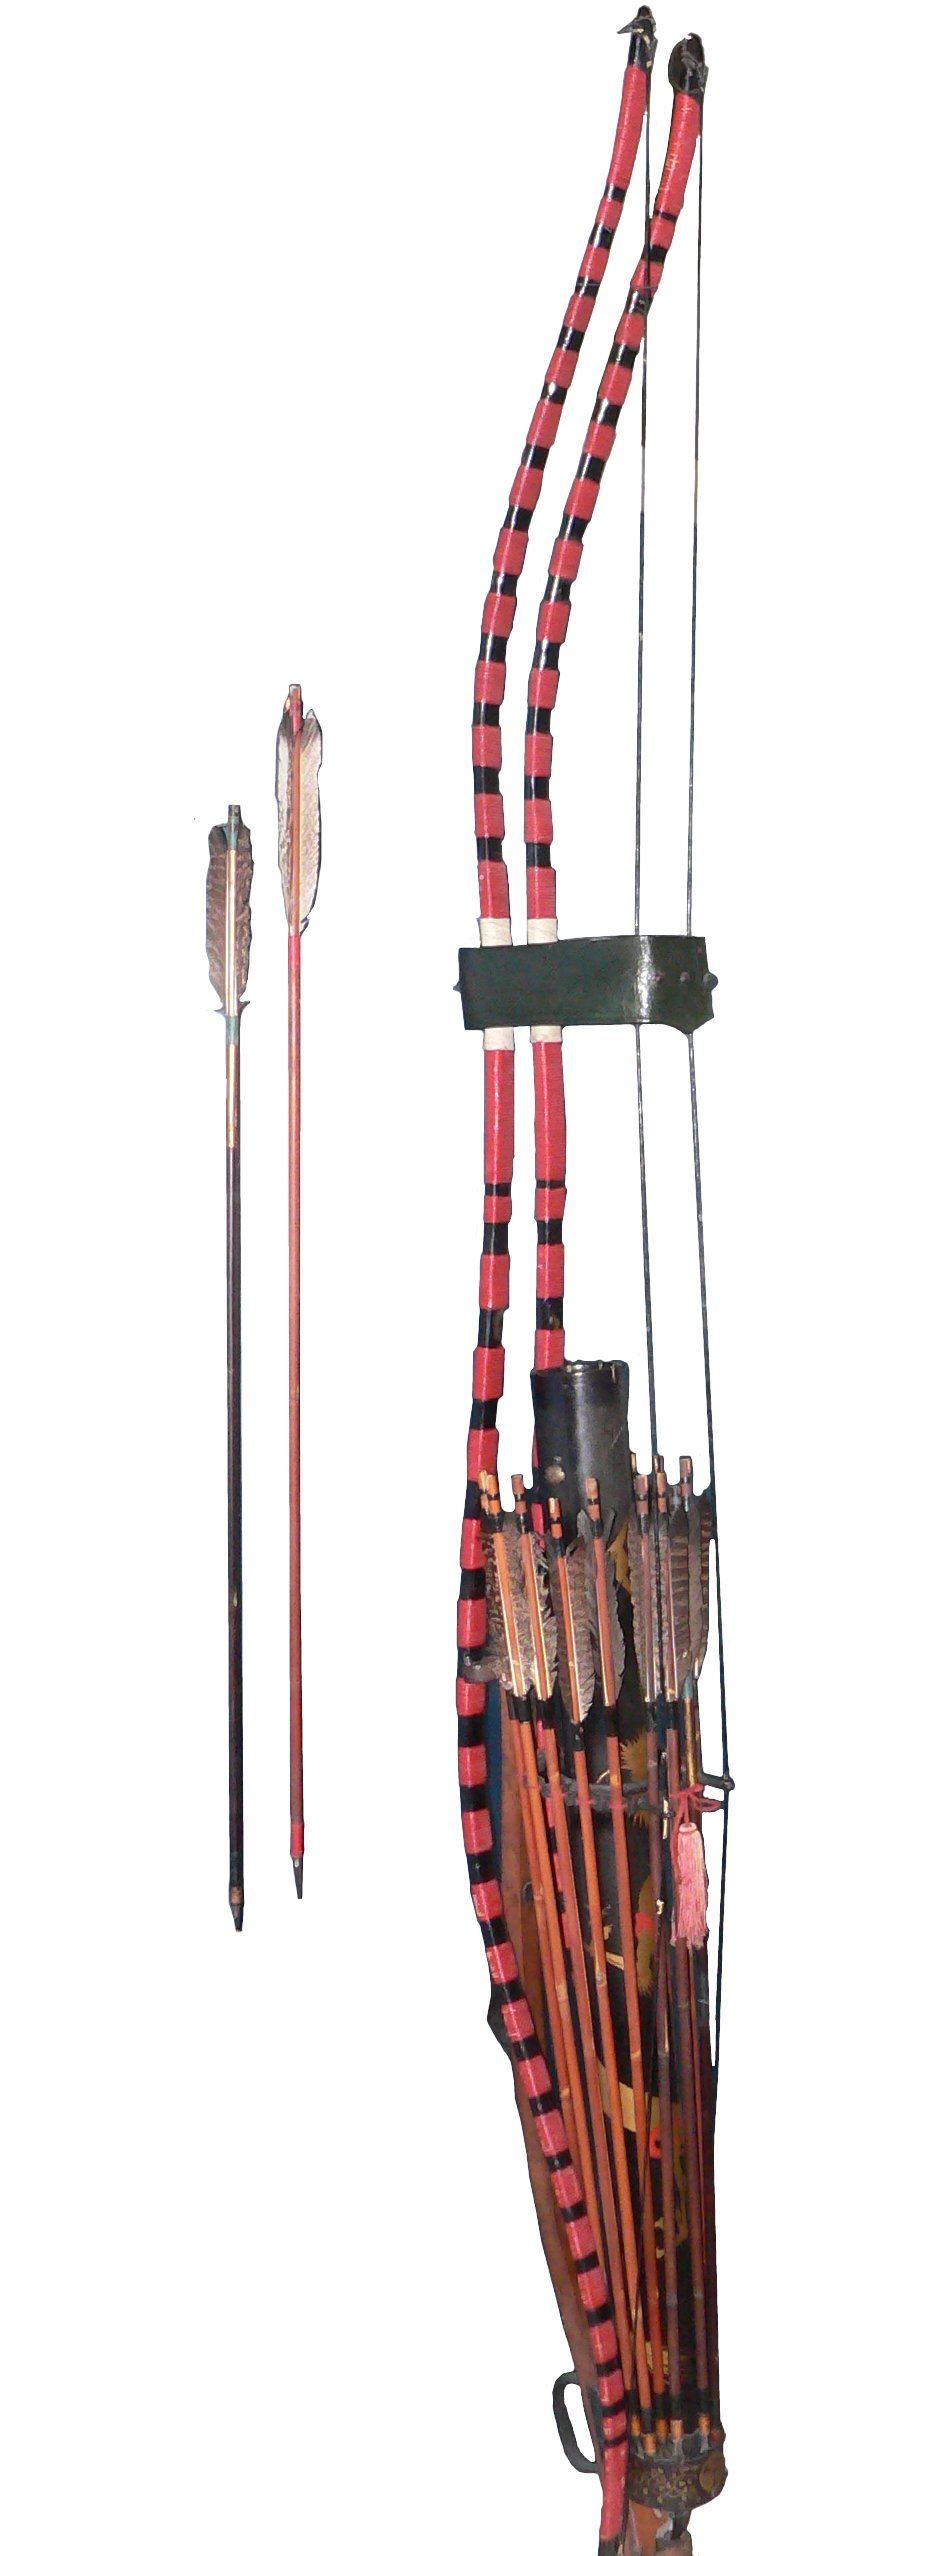 hight resolution of edo period s bow and arrow japanese bow